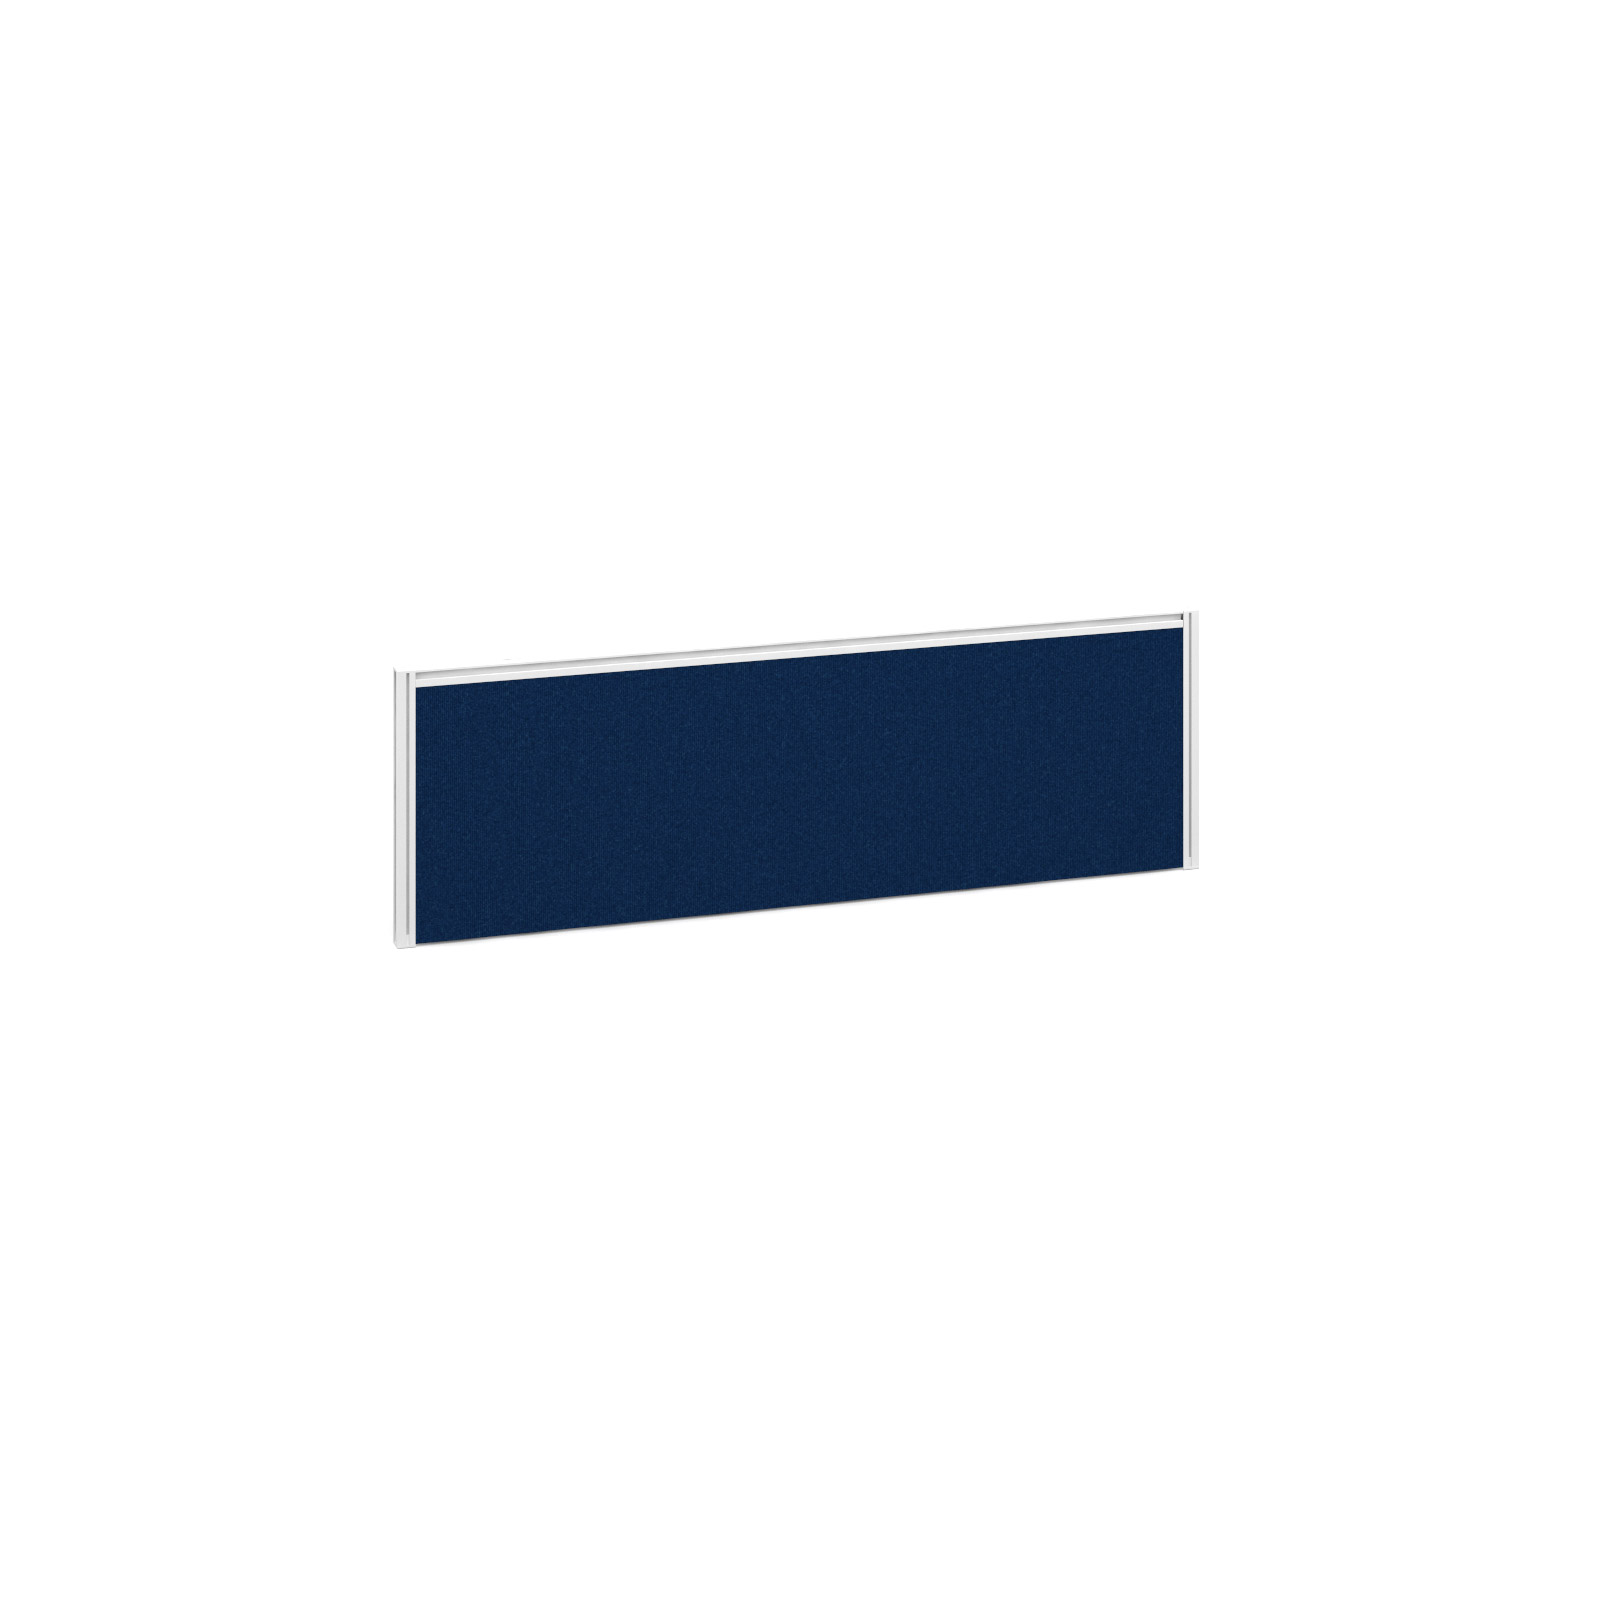 1185mm Deluxe Fabric Return Screen -  White Frame - Blue Fabric